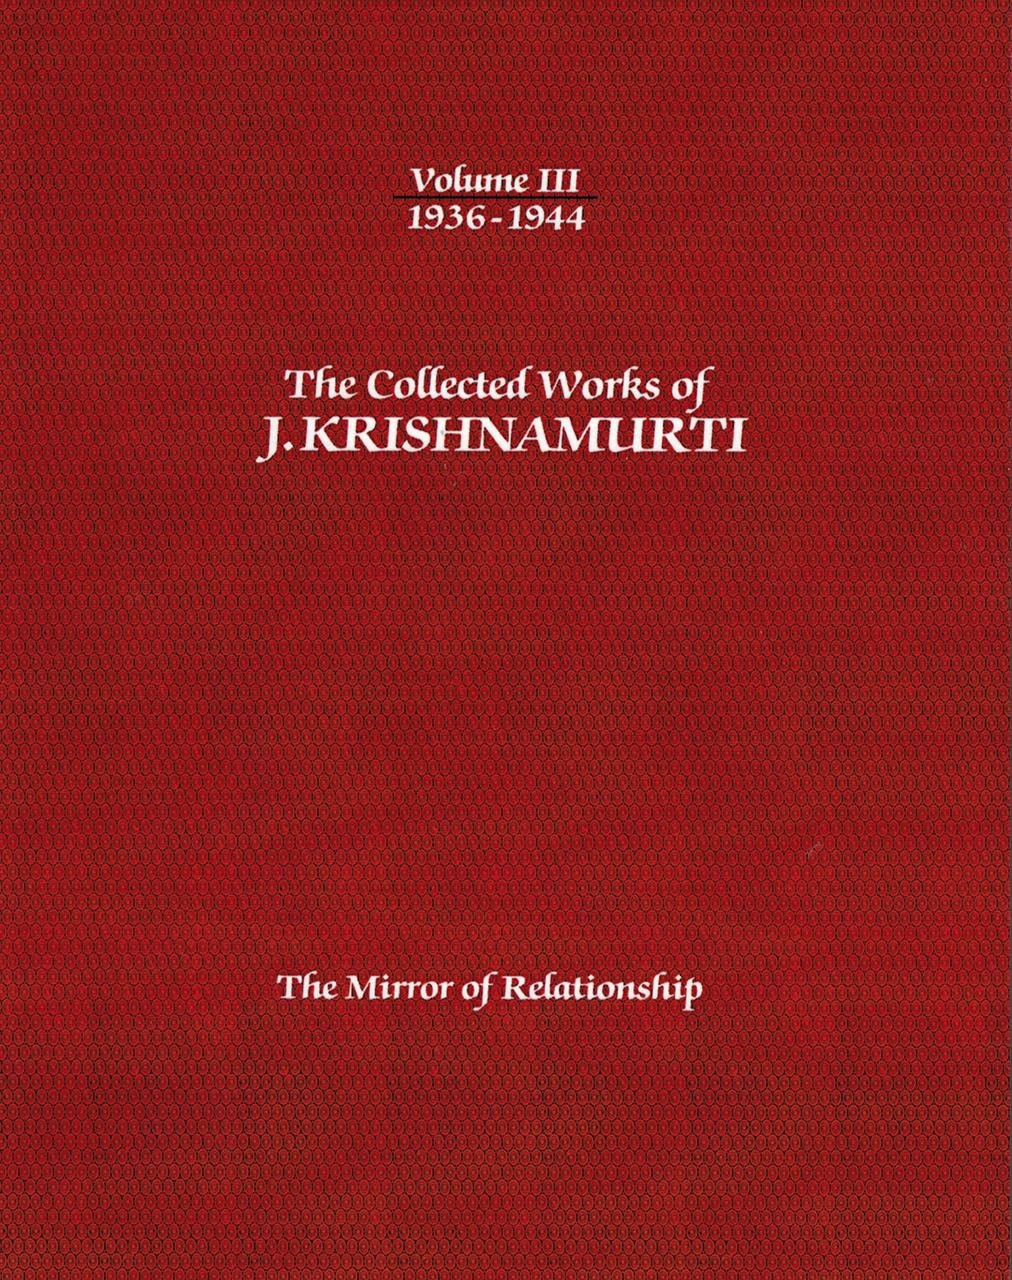 Download The Collected Works of J.Krishnamurti - Volume III 1936-1944: The Mirror Of Relationship ebook